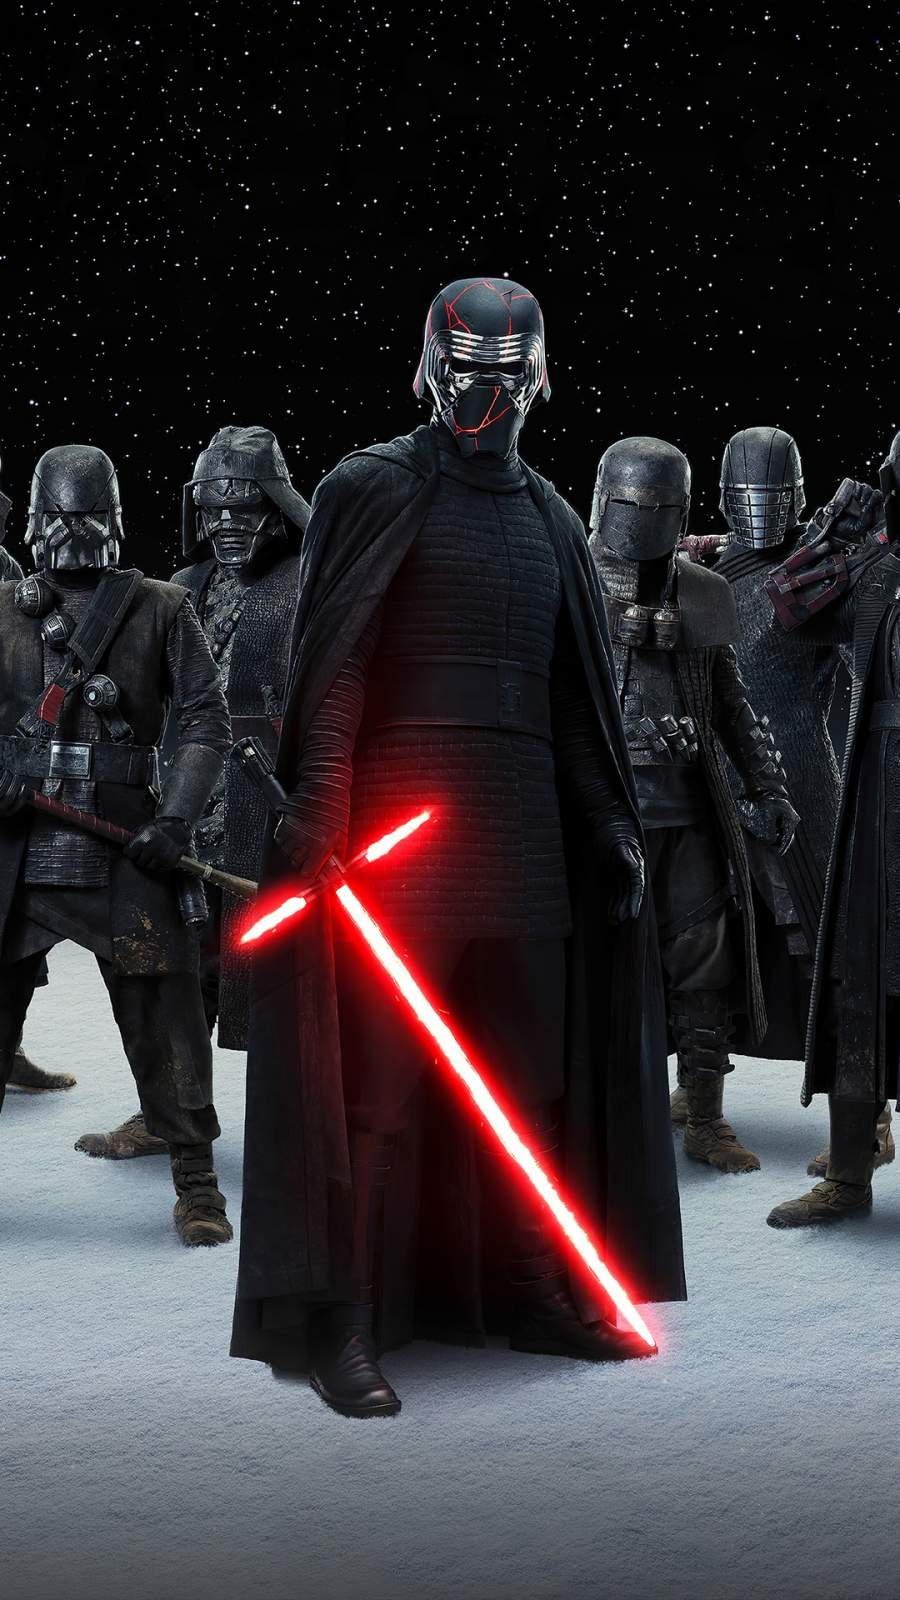 Star Wars Kylo Ren Army iPhone Wallpaper